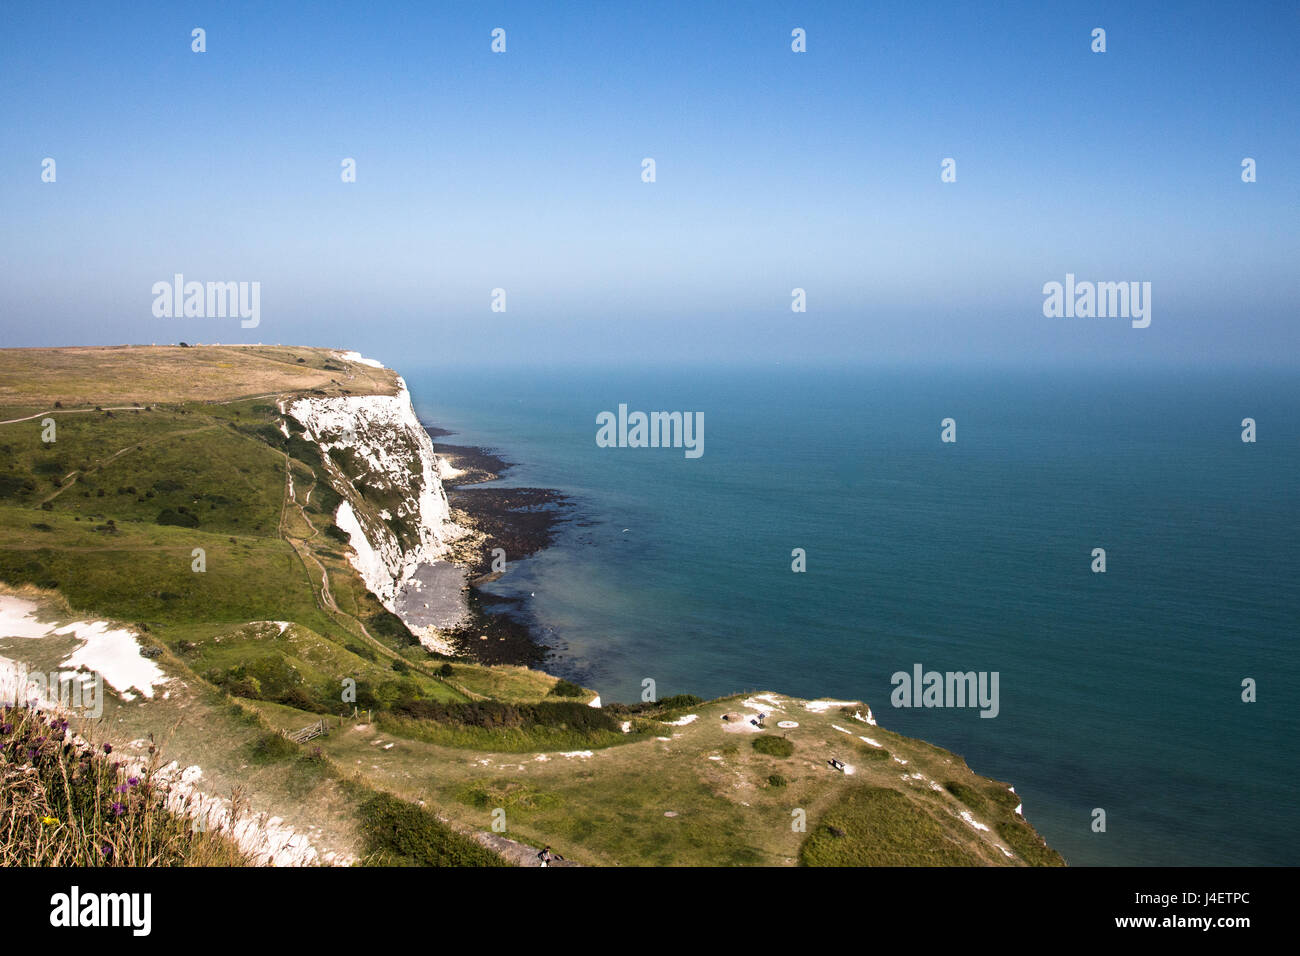 The white cliffs of Dover on a sunny blue sky day. - Stock Image